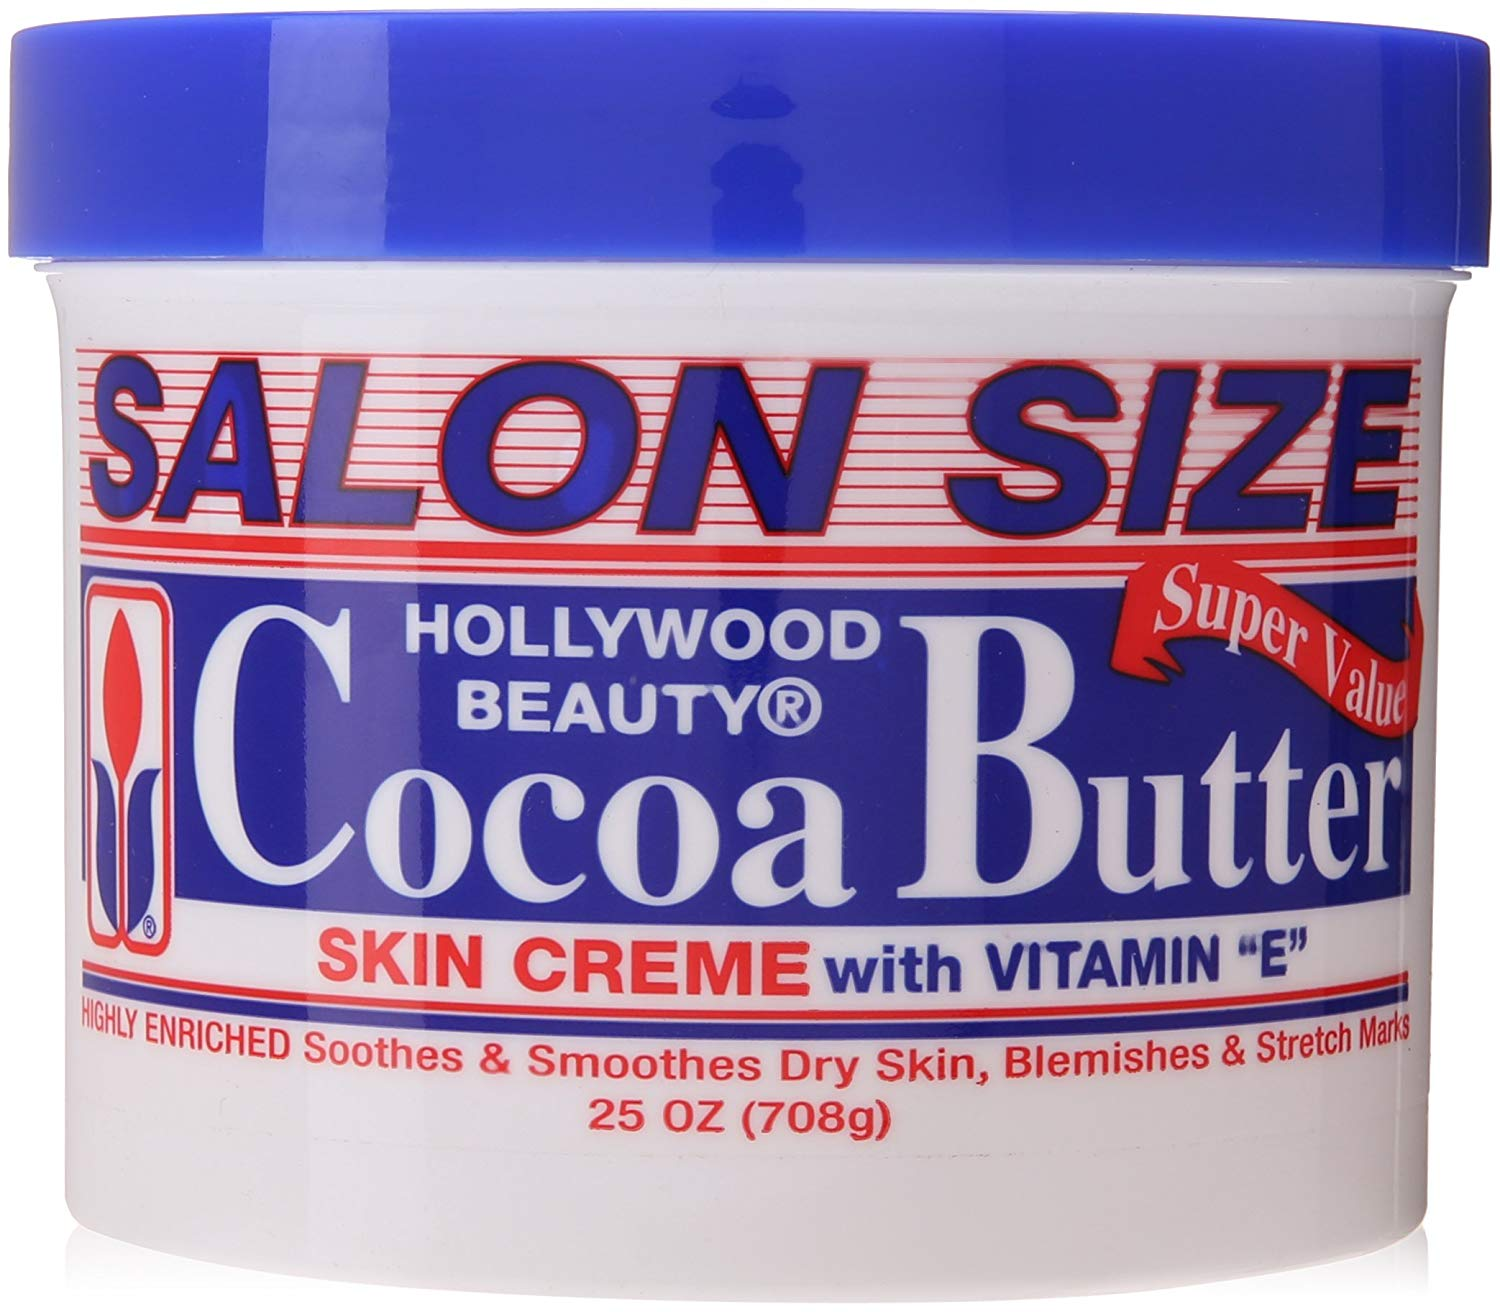 Hollywood Beauty Cocoa Butter Skin Creme With Vitamin E - 25oz